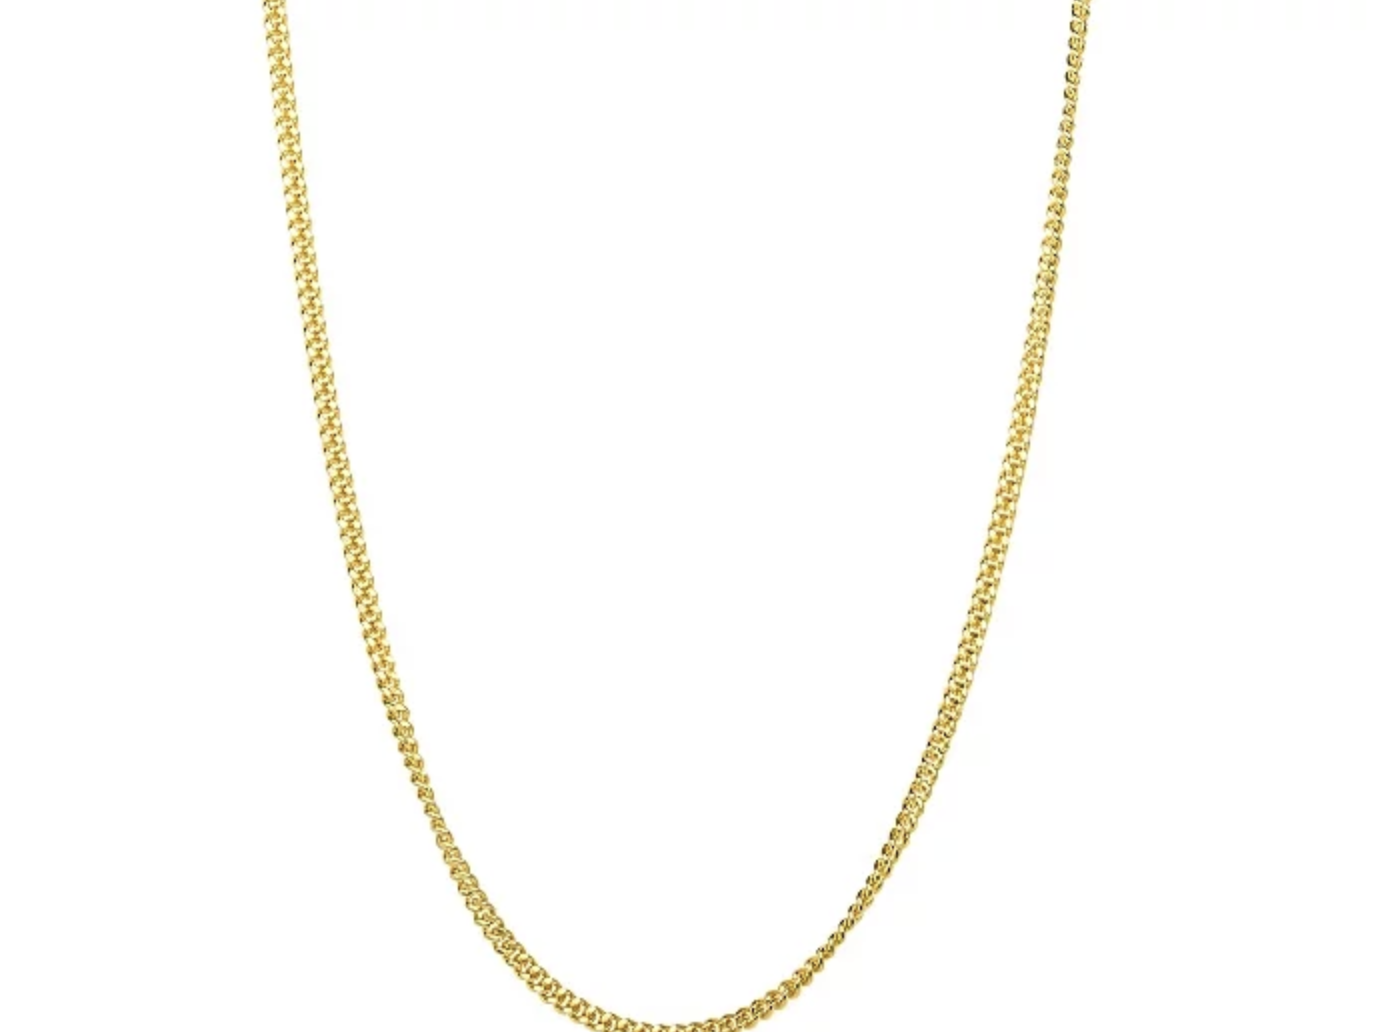 Gold Plated Yellow 16 Inch Chain